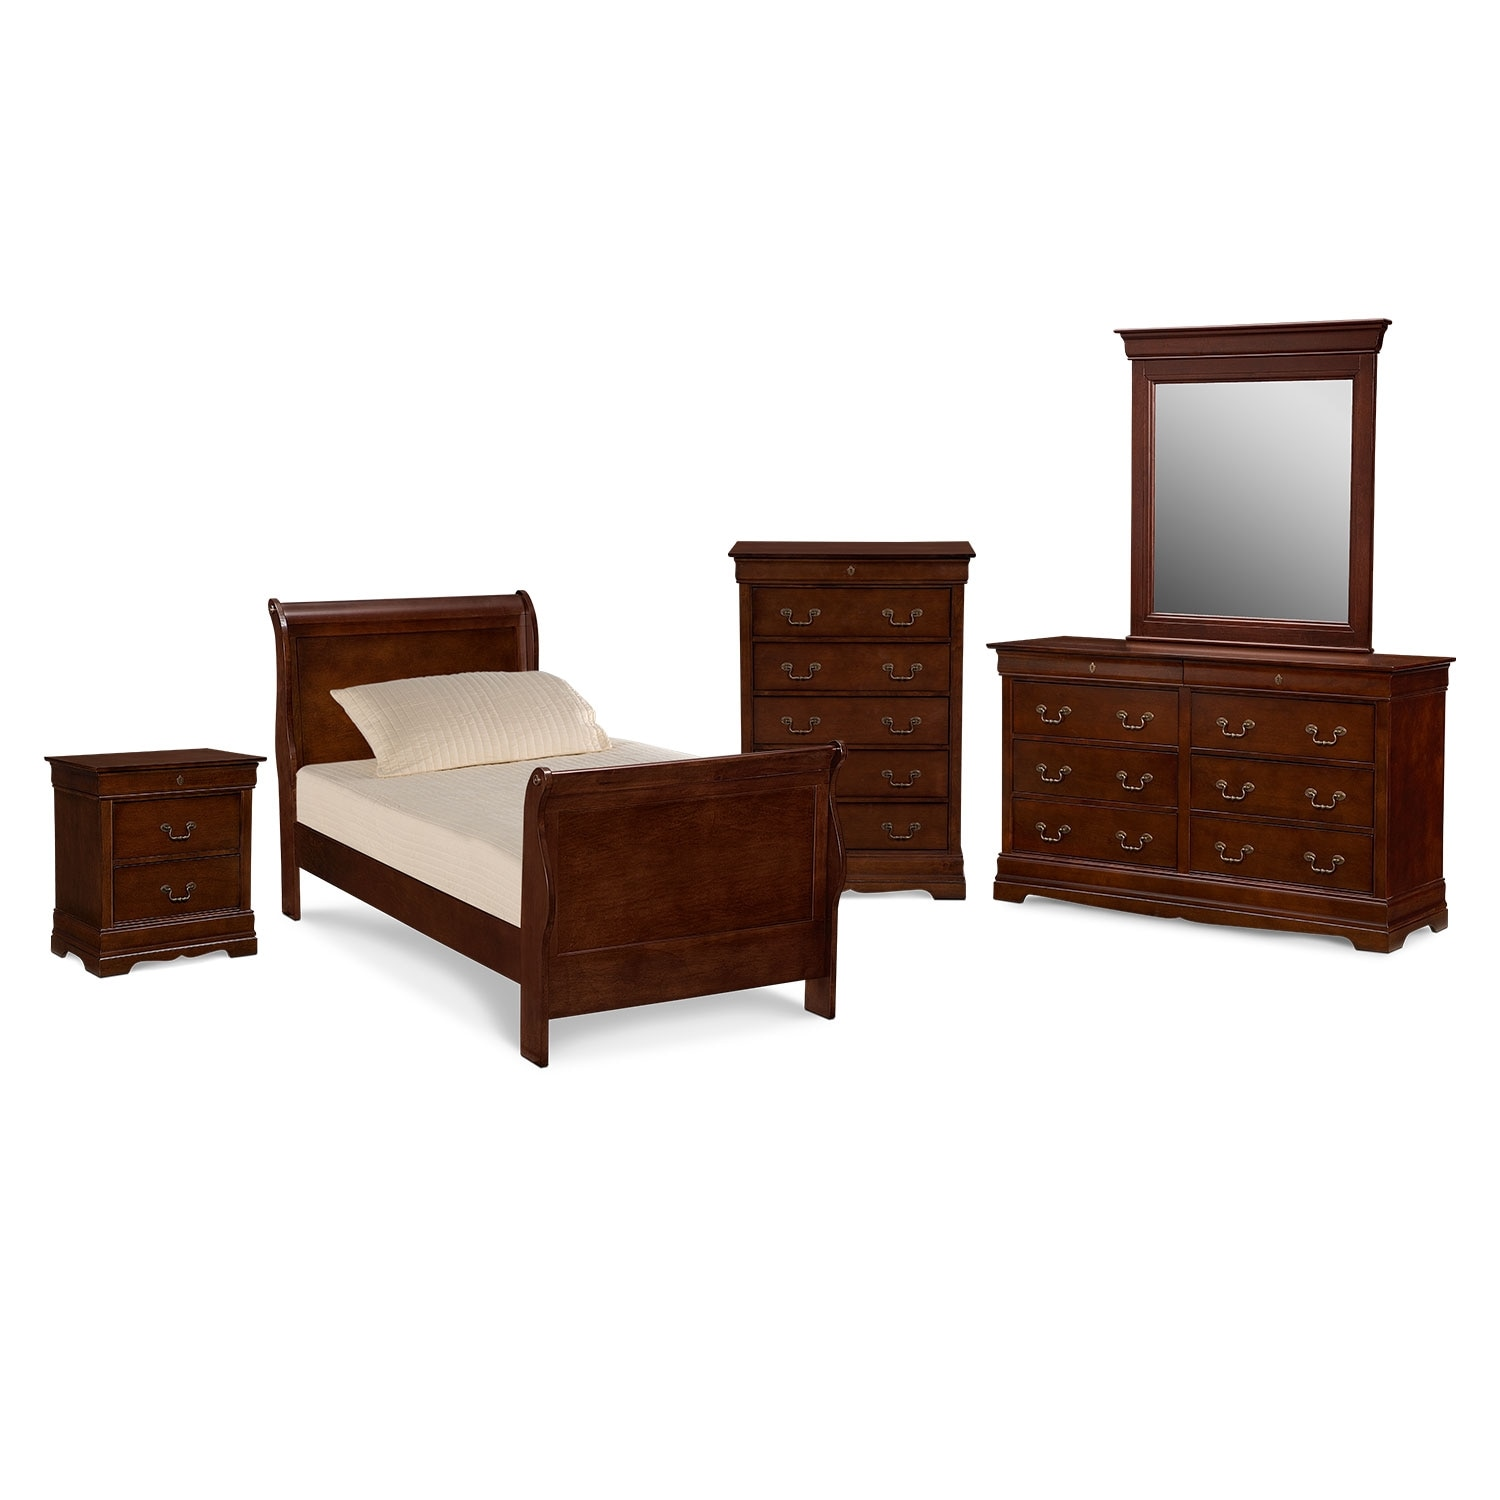 American Signature Furniture Financing Minimum Credit Score: Neo Classic Youth 7-Piece Full Bedroom Set